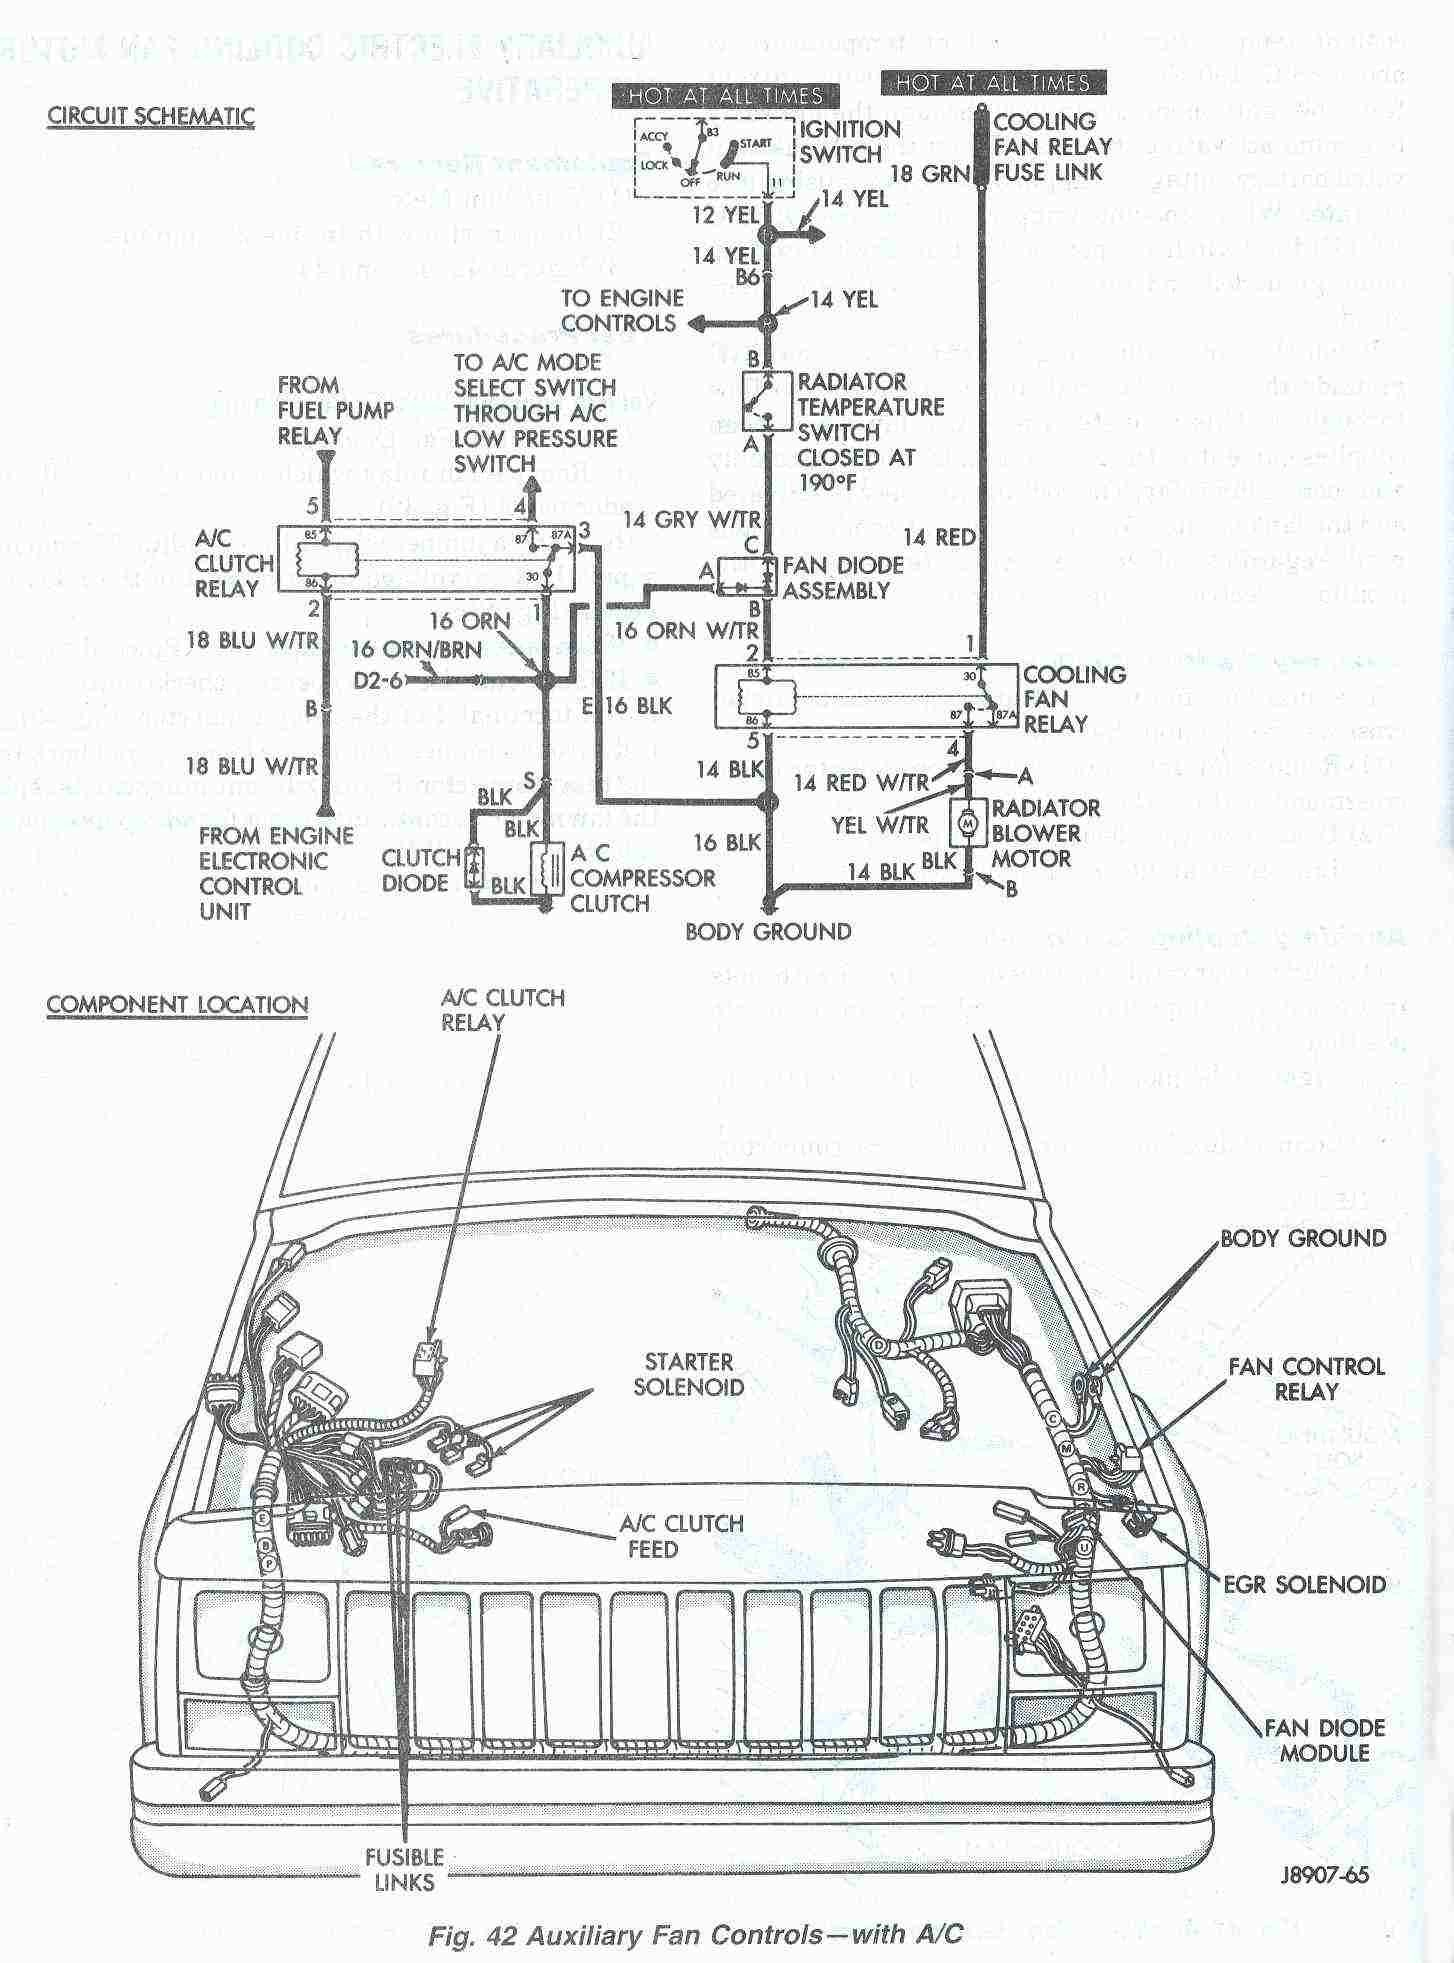 2002 Jeep Grand Cherokee Engine Diagram 2 Jeep Grand Cherokee Wiring Diagram Image Of 2002 Jeep Grand Cherokee Engine Diagram 2